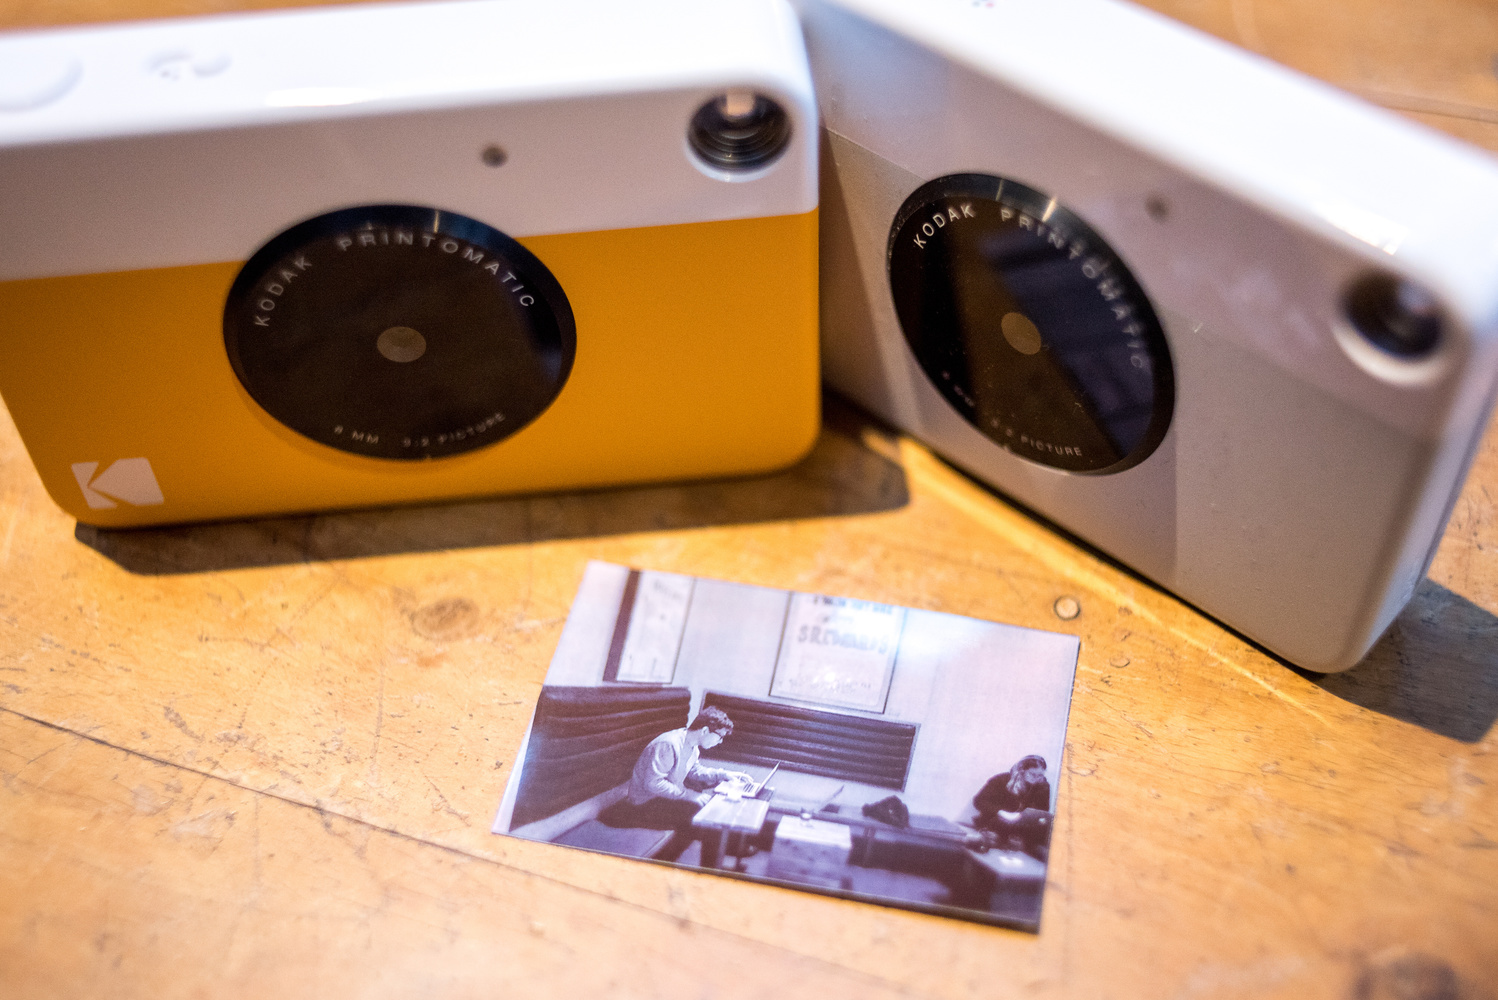 fstoppers reviews and compares kodak s printomatic with other